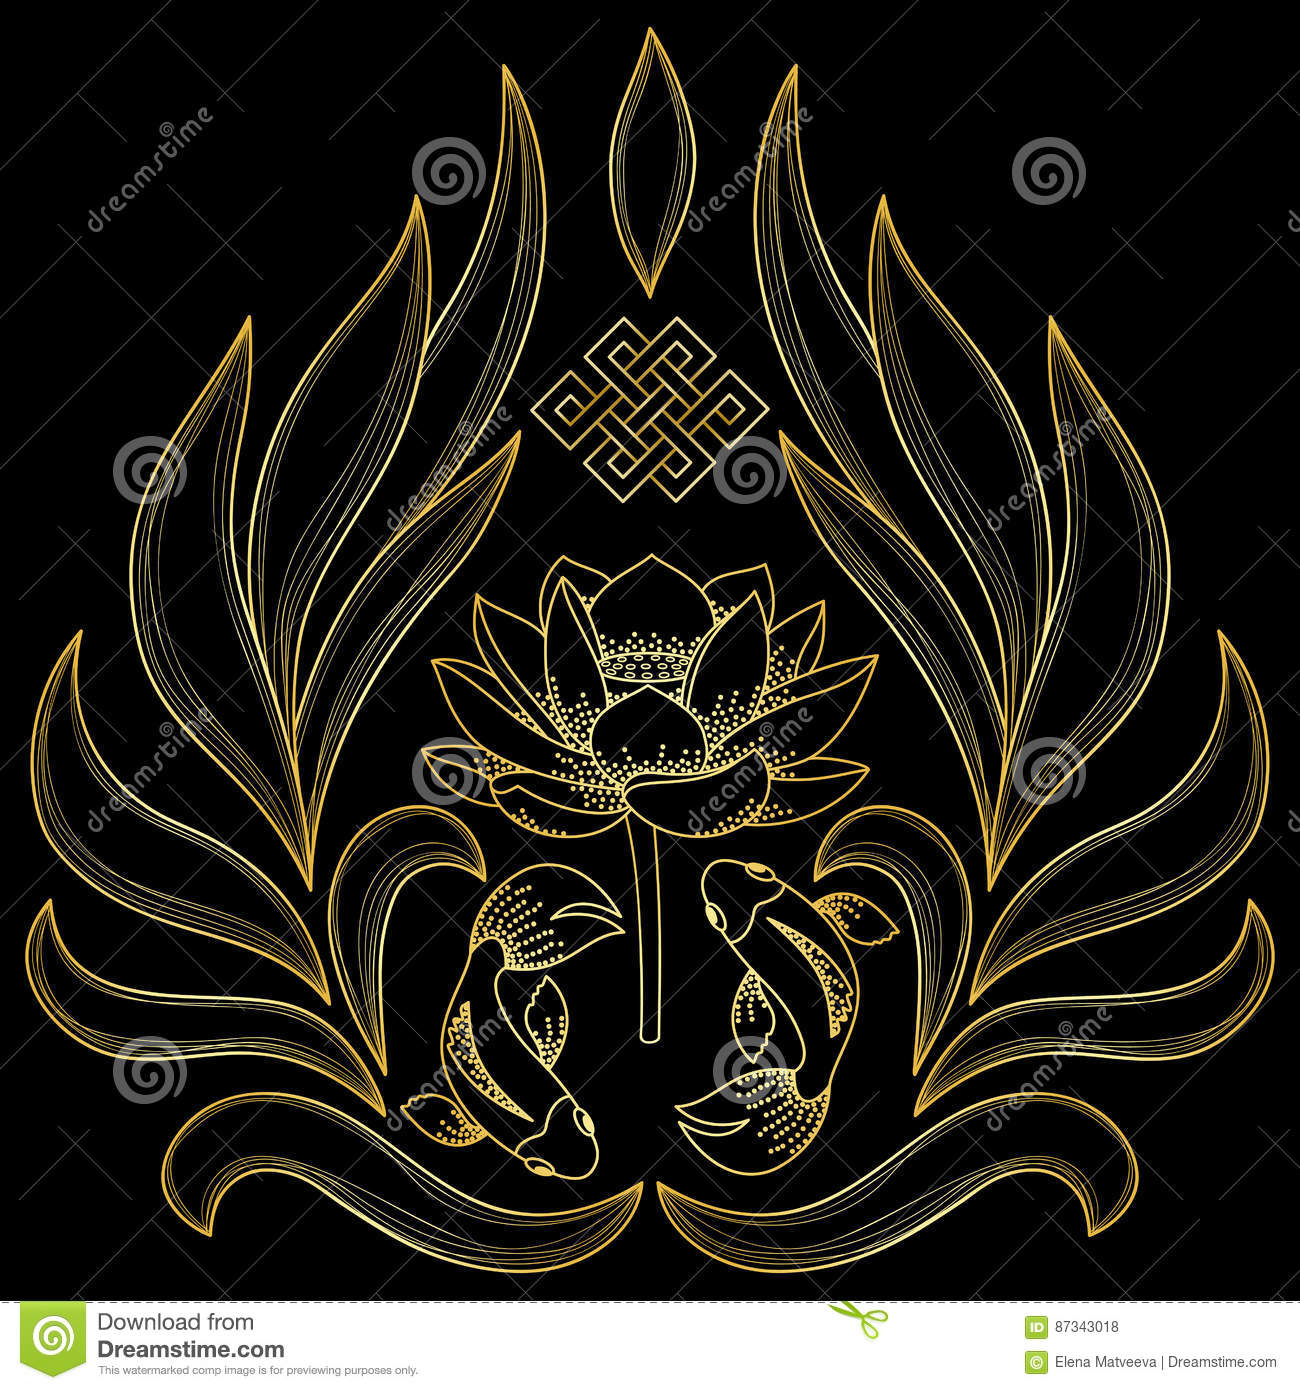 Gold Buddhism Symbols Stock Vector Illustration Of Symbol 87343018